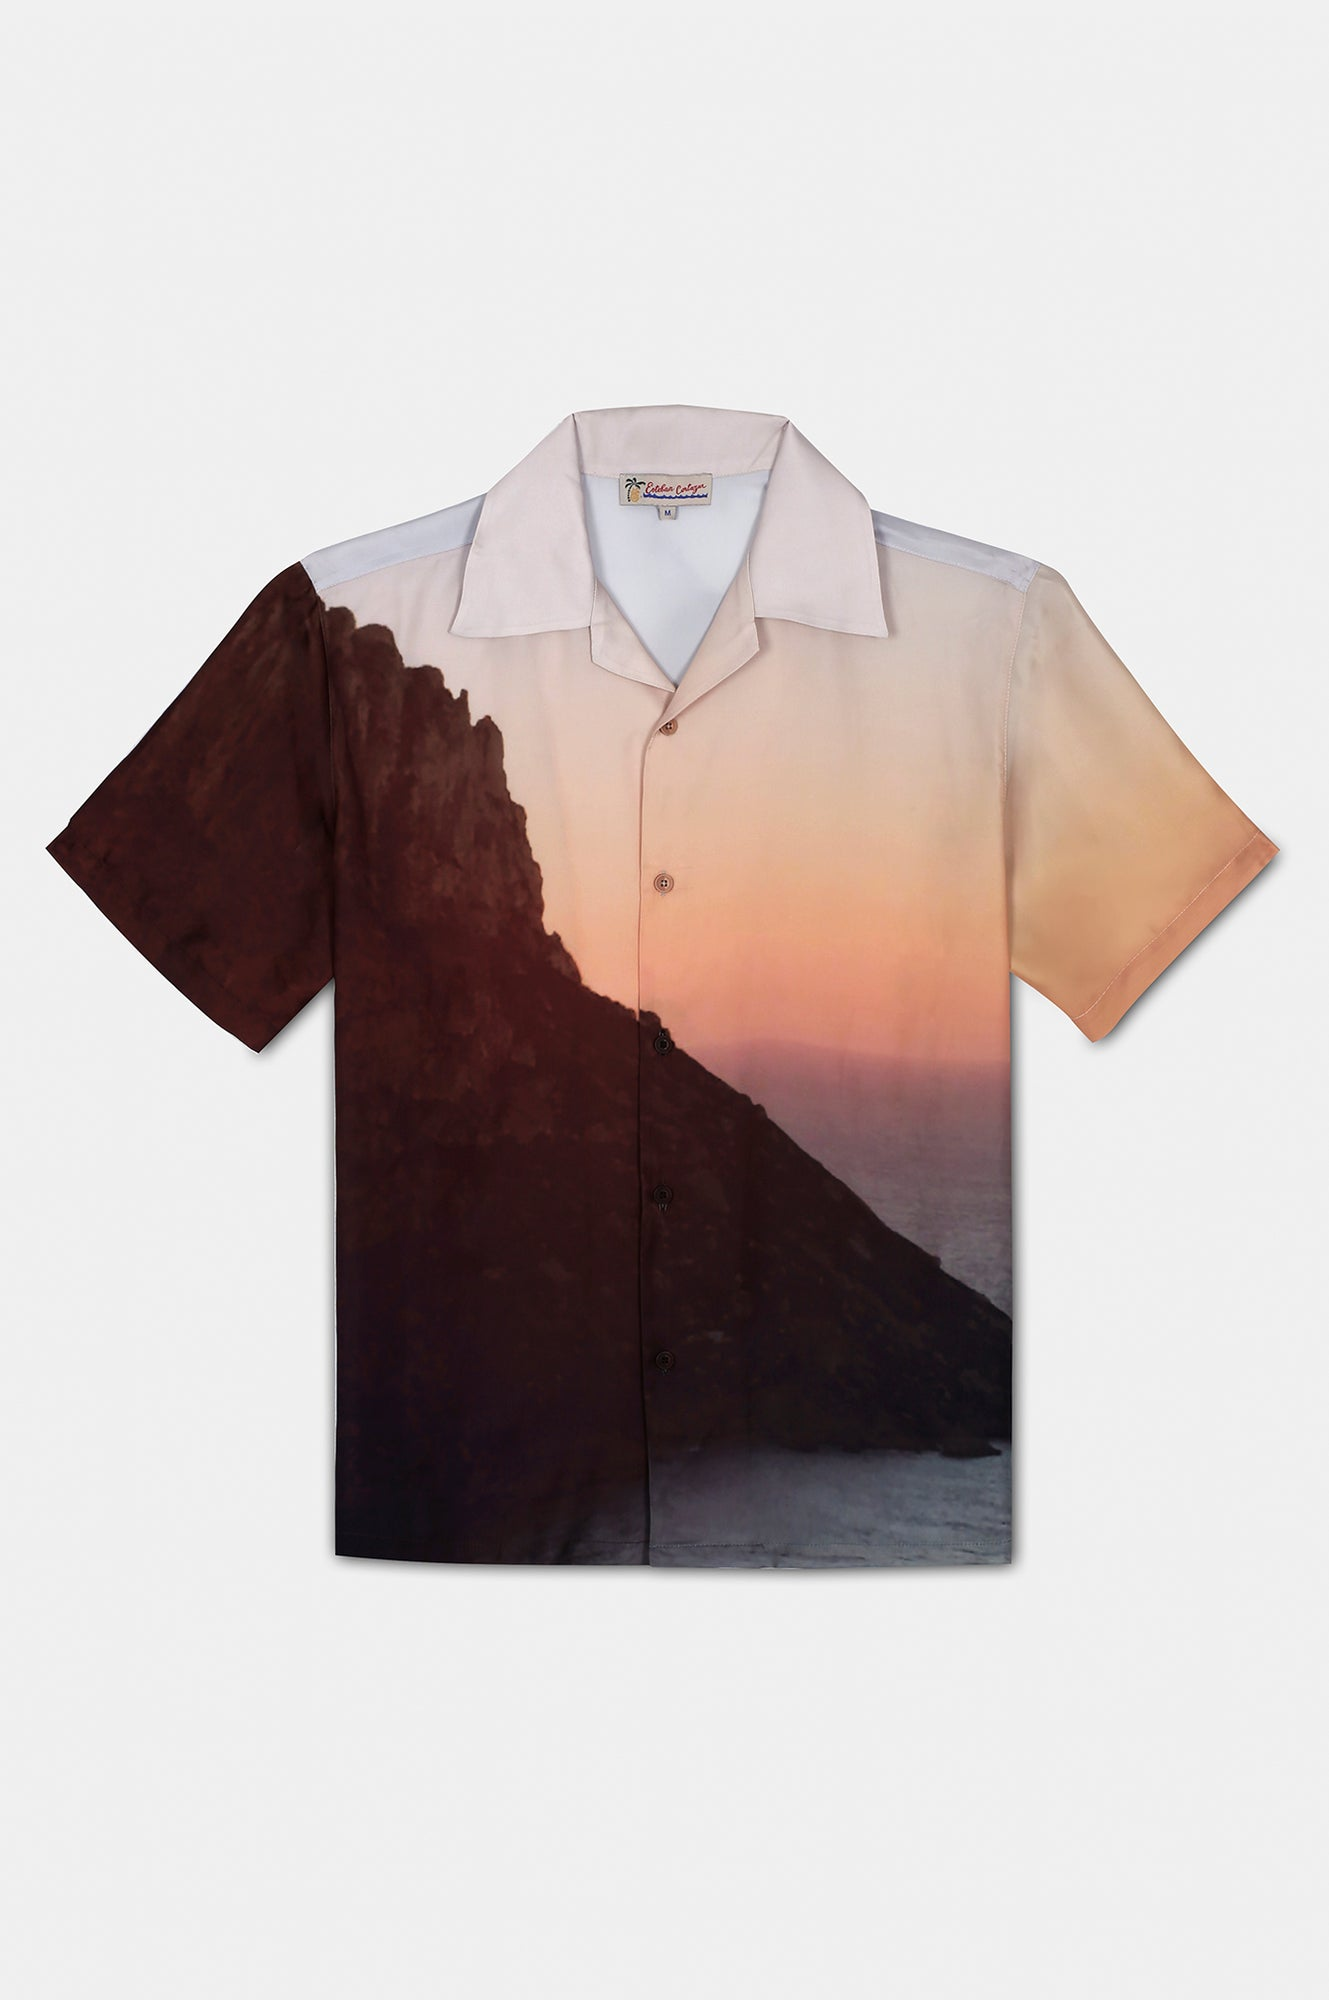 ES VEDRA SUNSET PRINT SHORT SLEEVE SHIRT - Esteban Cortazar